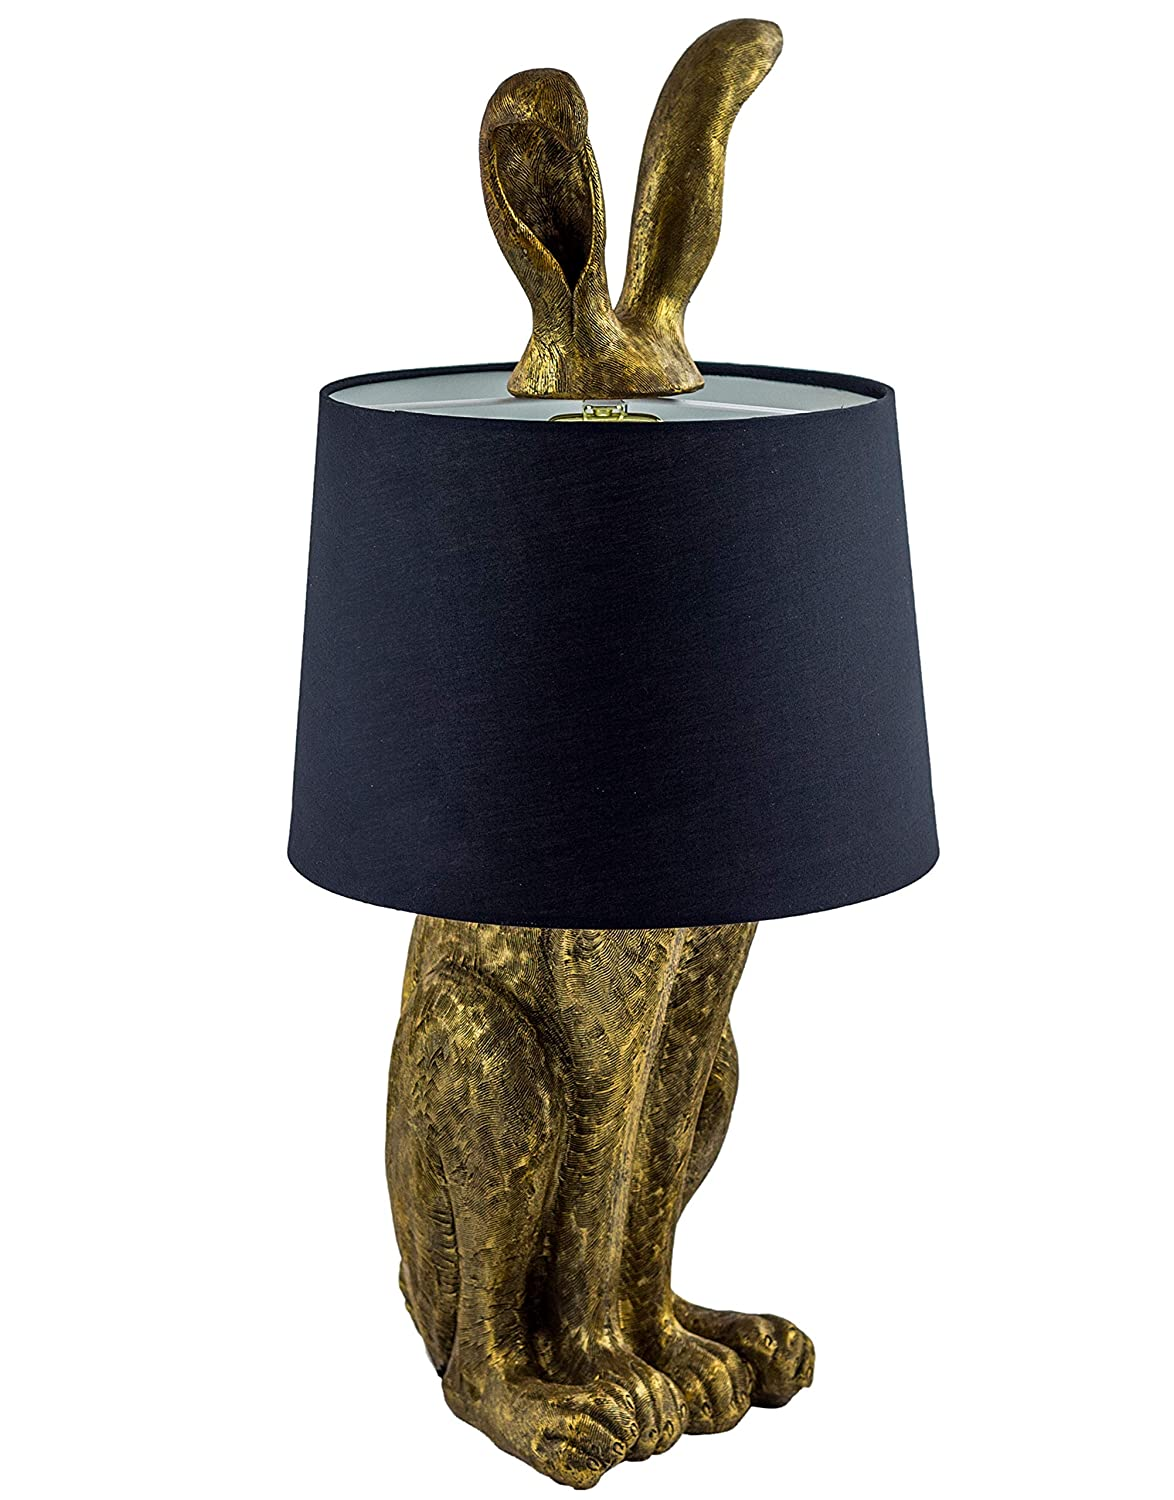 Large 77cm Antique Gold Rabbit Bunny Ears Table Lamp Black